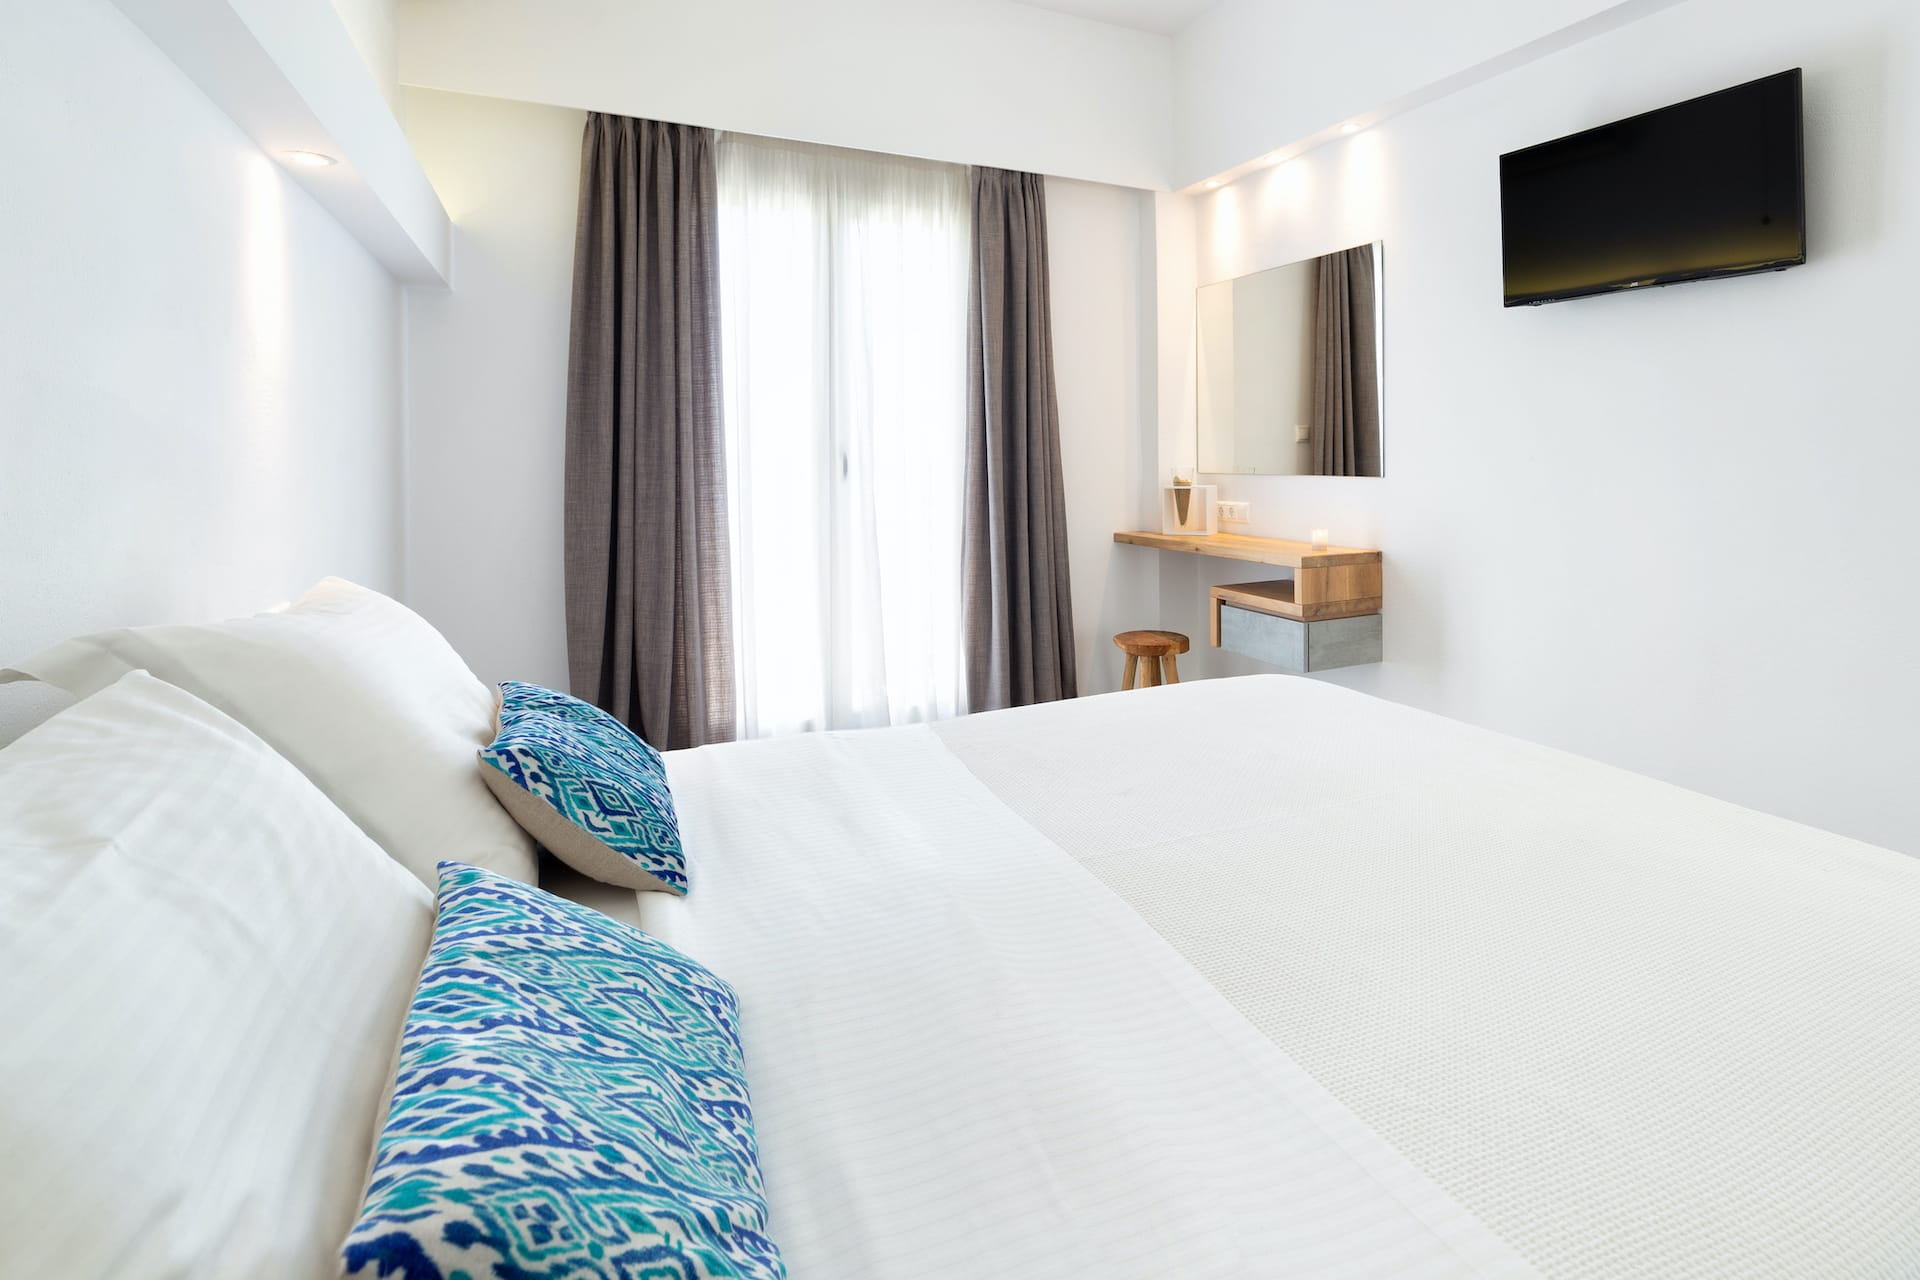 Standard double rooms in Paros